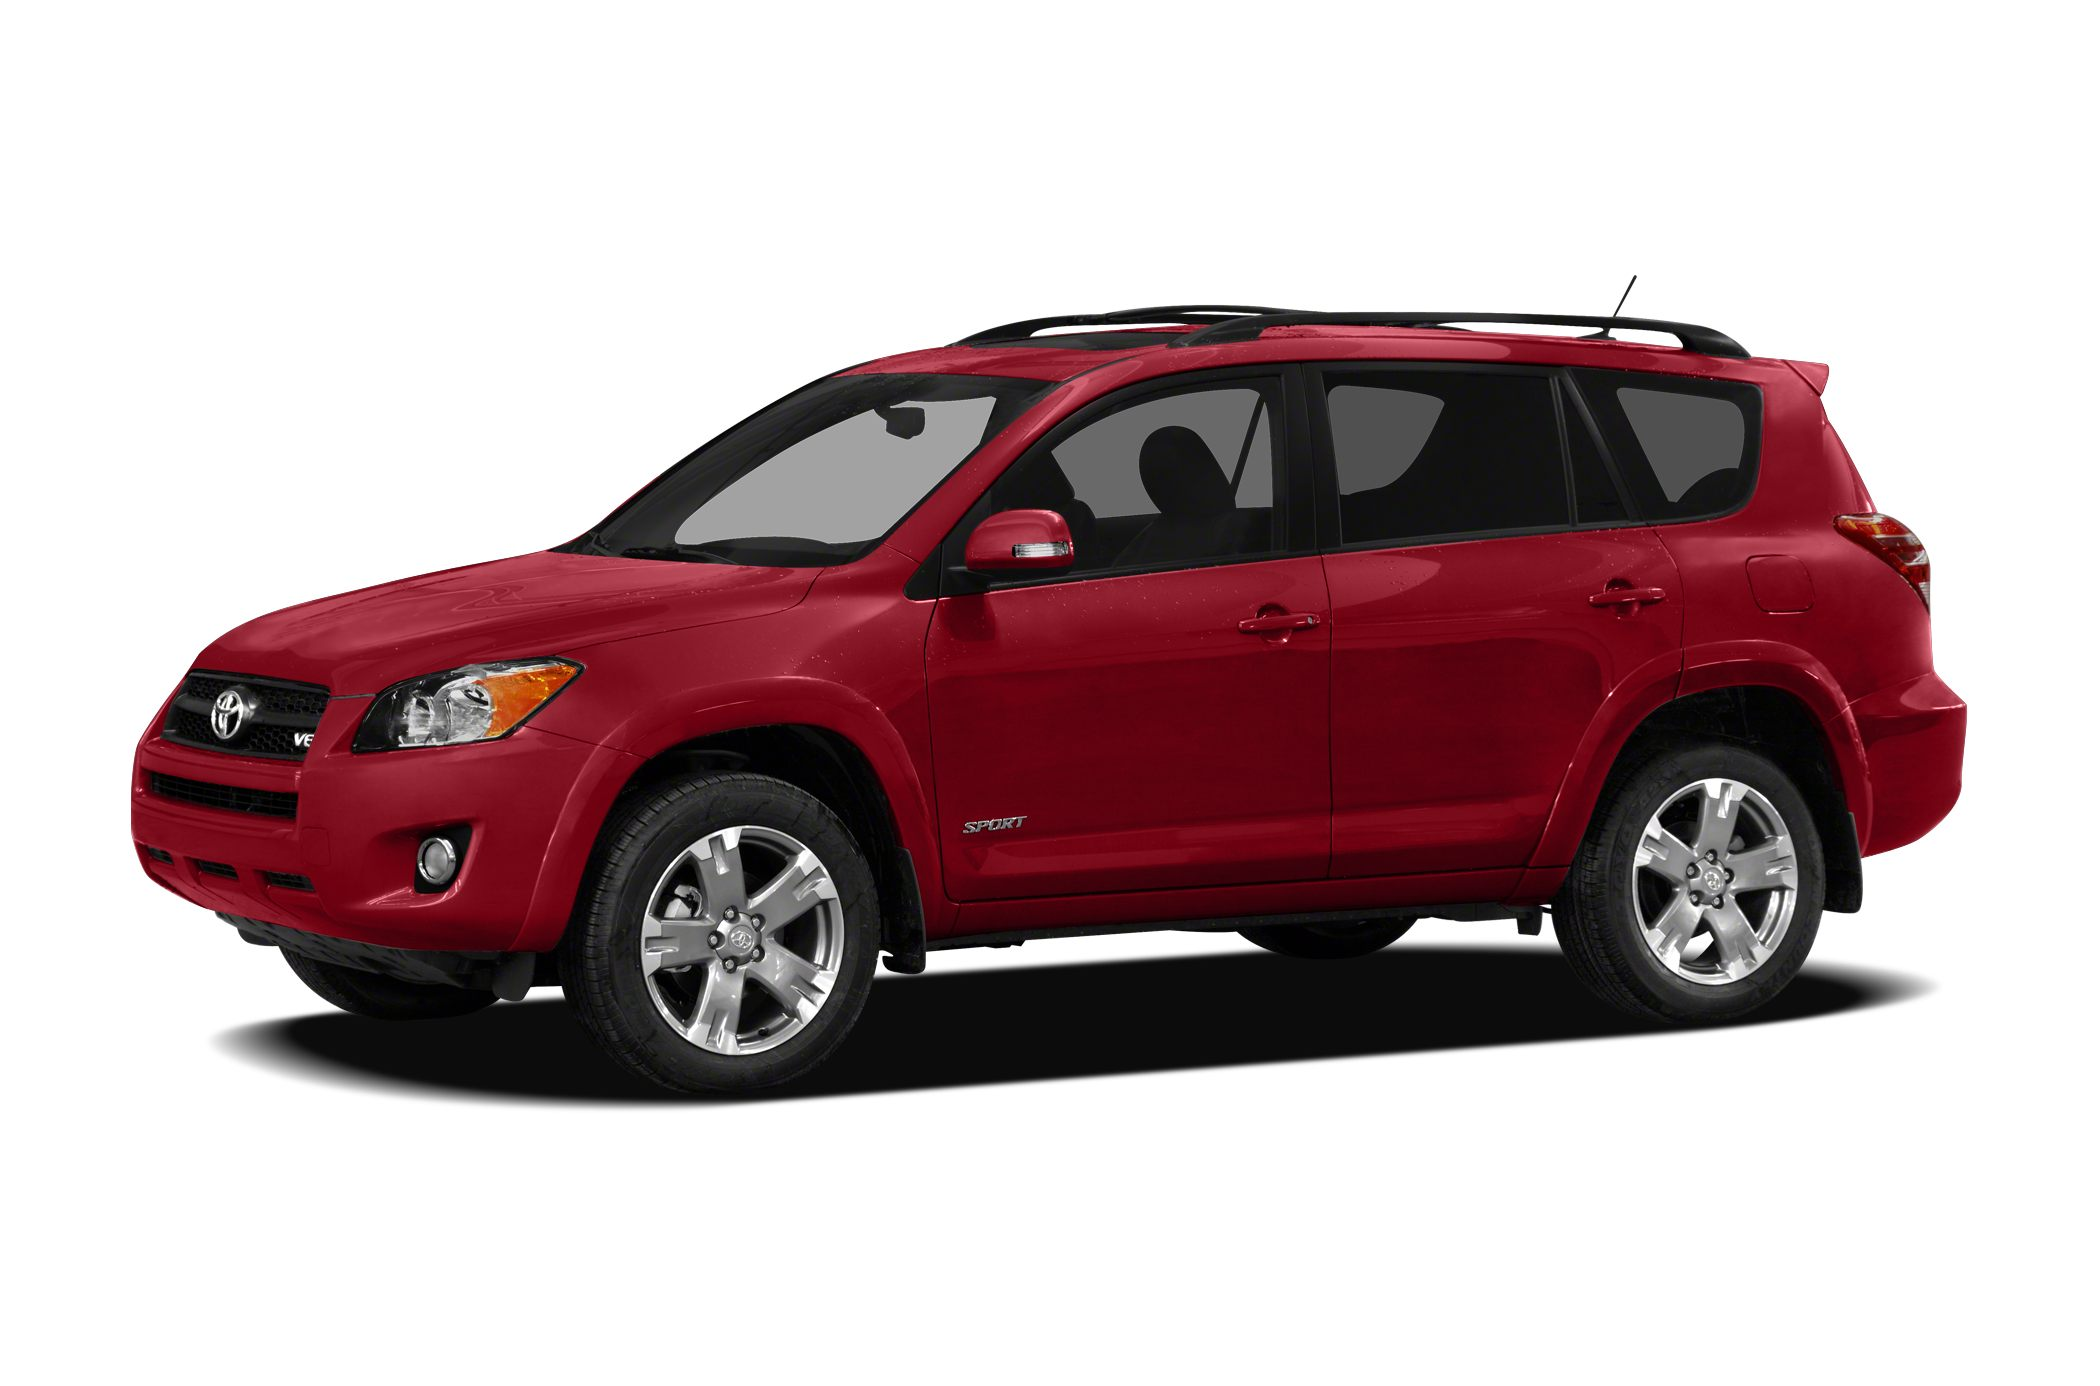 2011 Toyota RAV4 Limited SUV for sale in Muscatine for $20,995 with 43,575 miles.